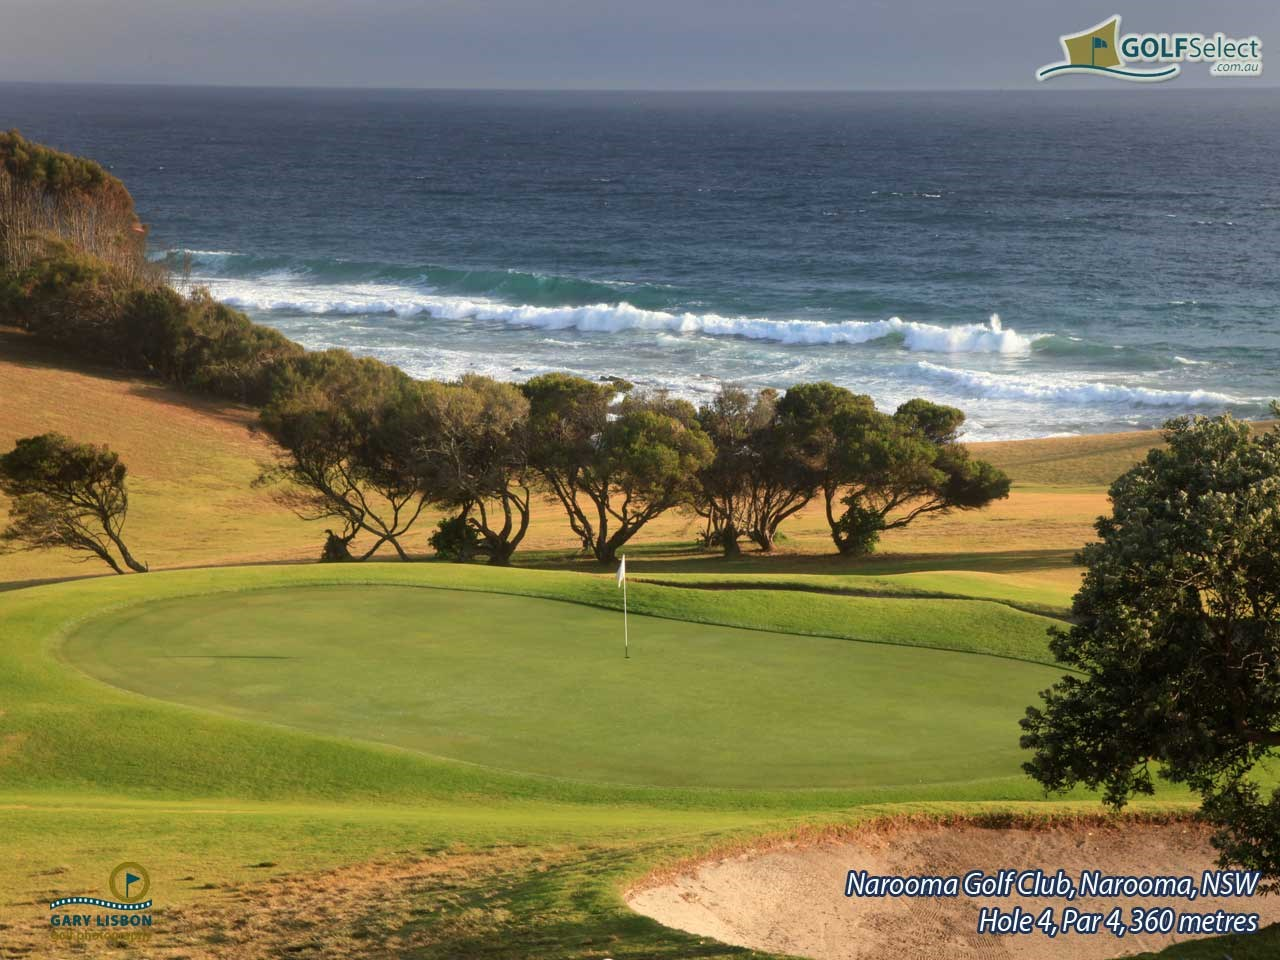 Narooma Golf Club Hole 4, Par 4, 360 metres